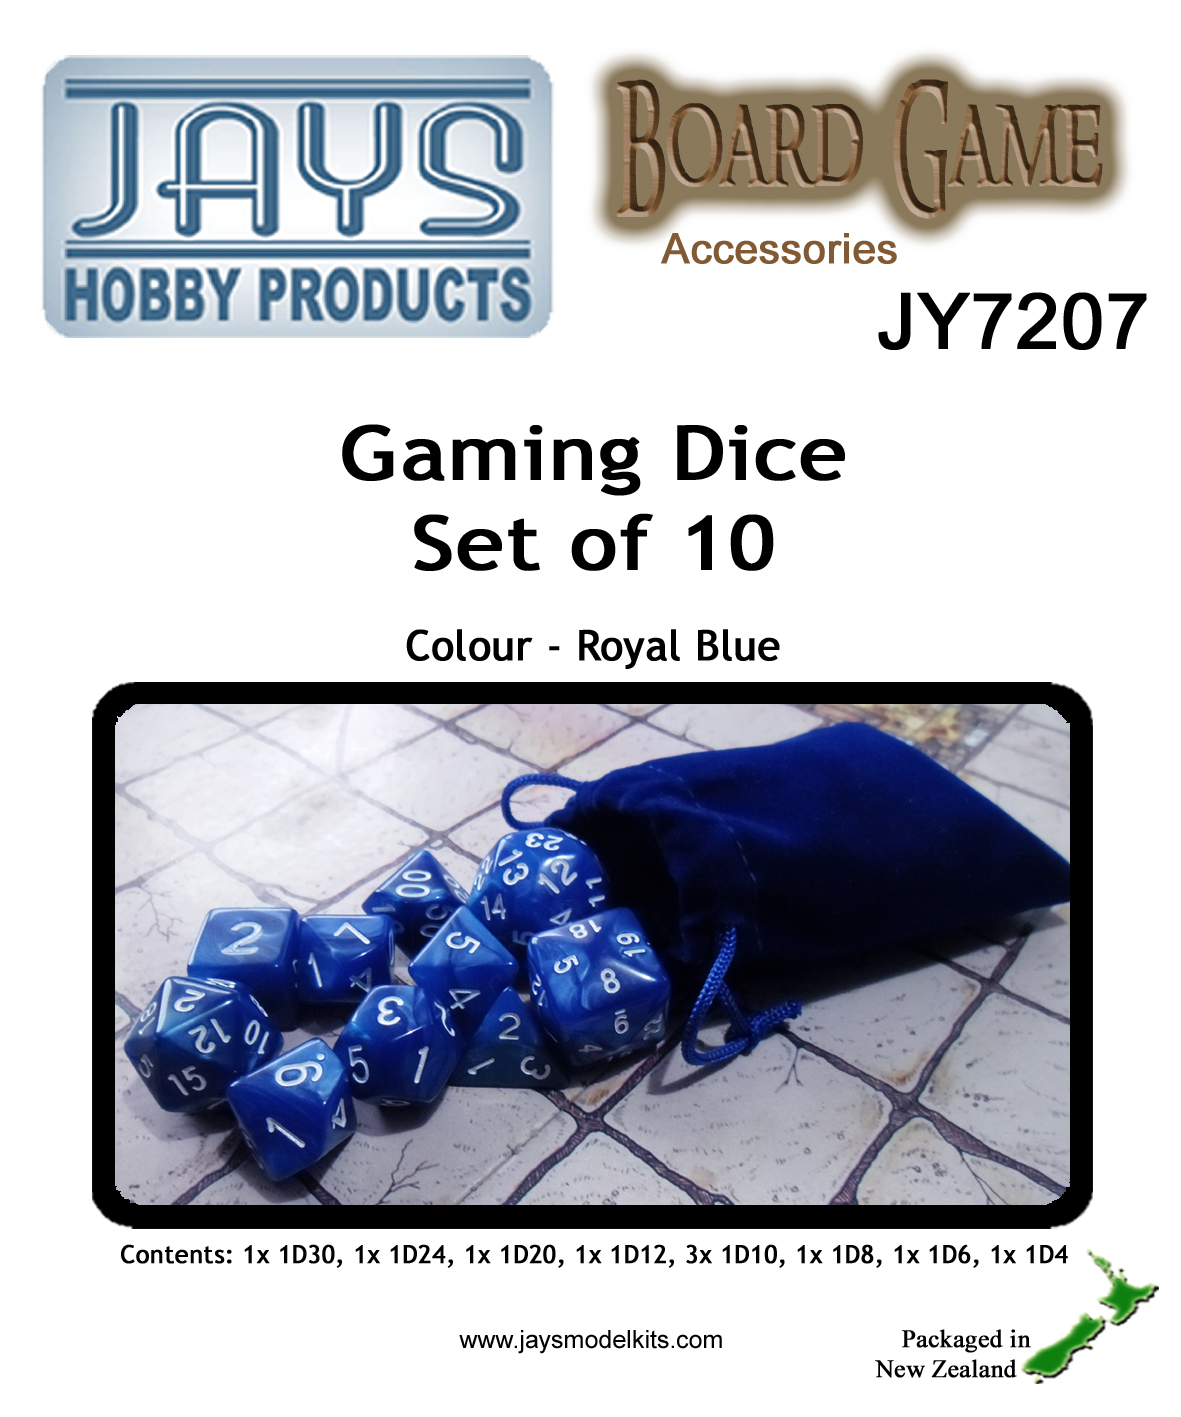 JY7207 Gaming Dice Set of Ten - Colour: Royal Blue